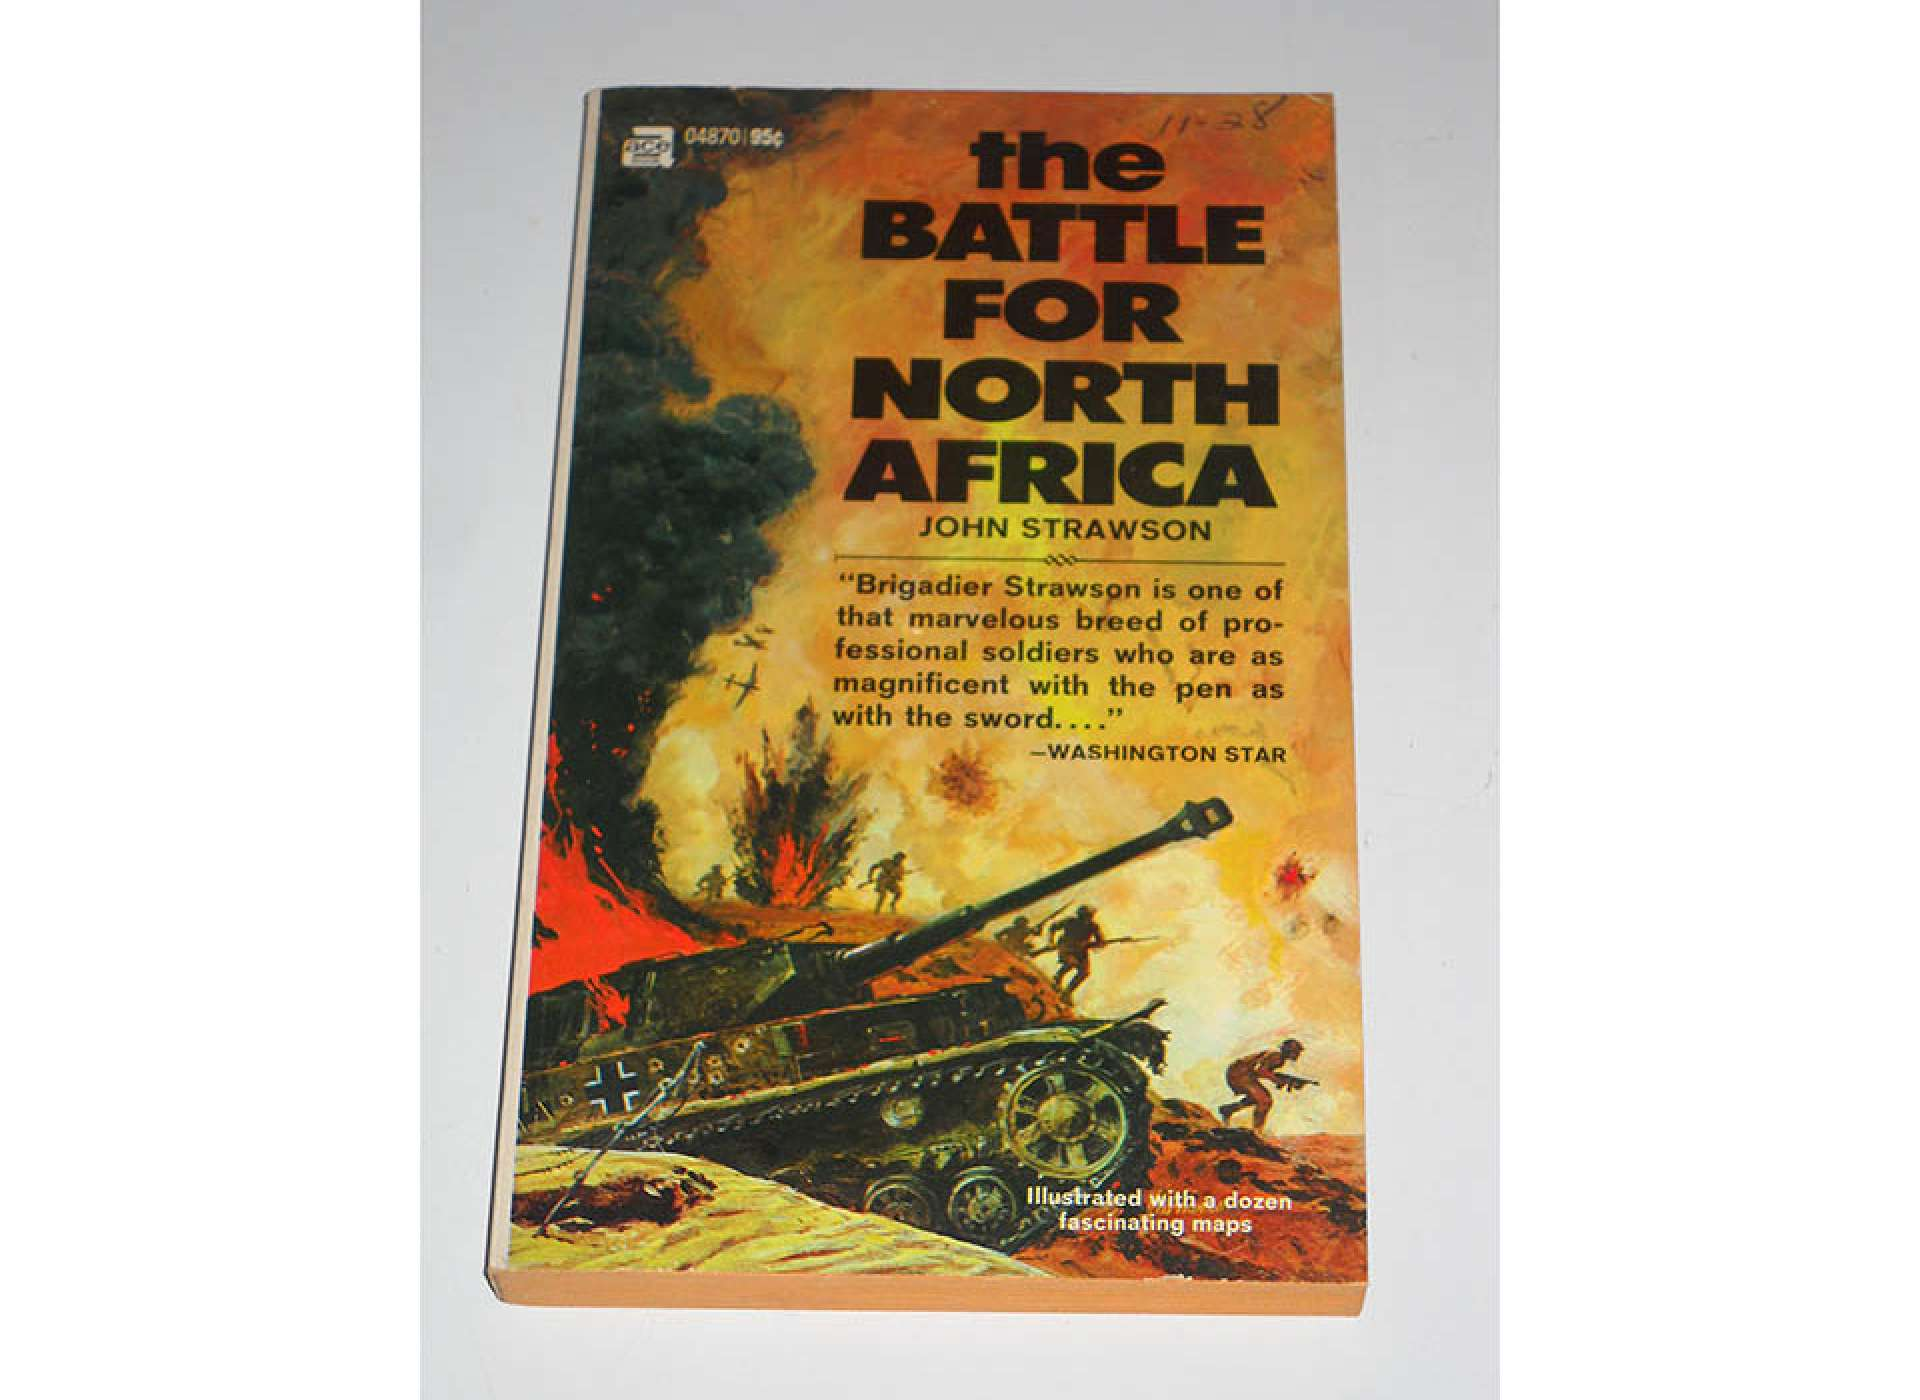 The Battle for North Africa. Courtesy of Amazon.com